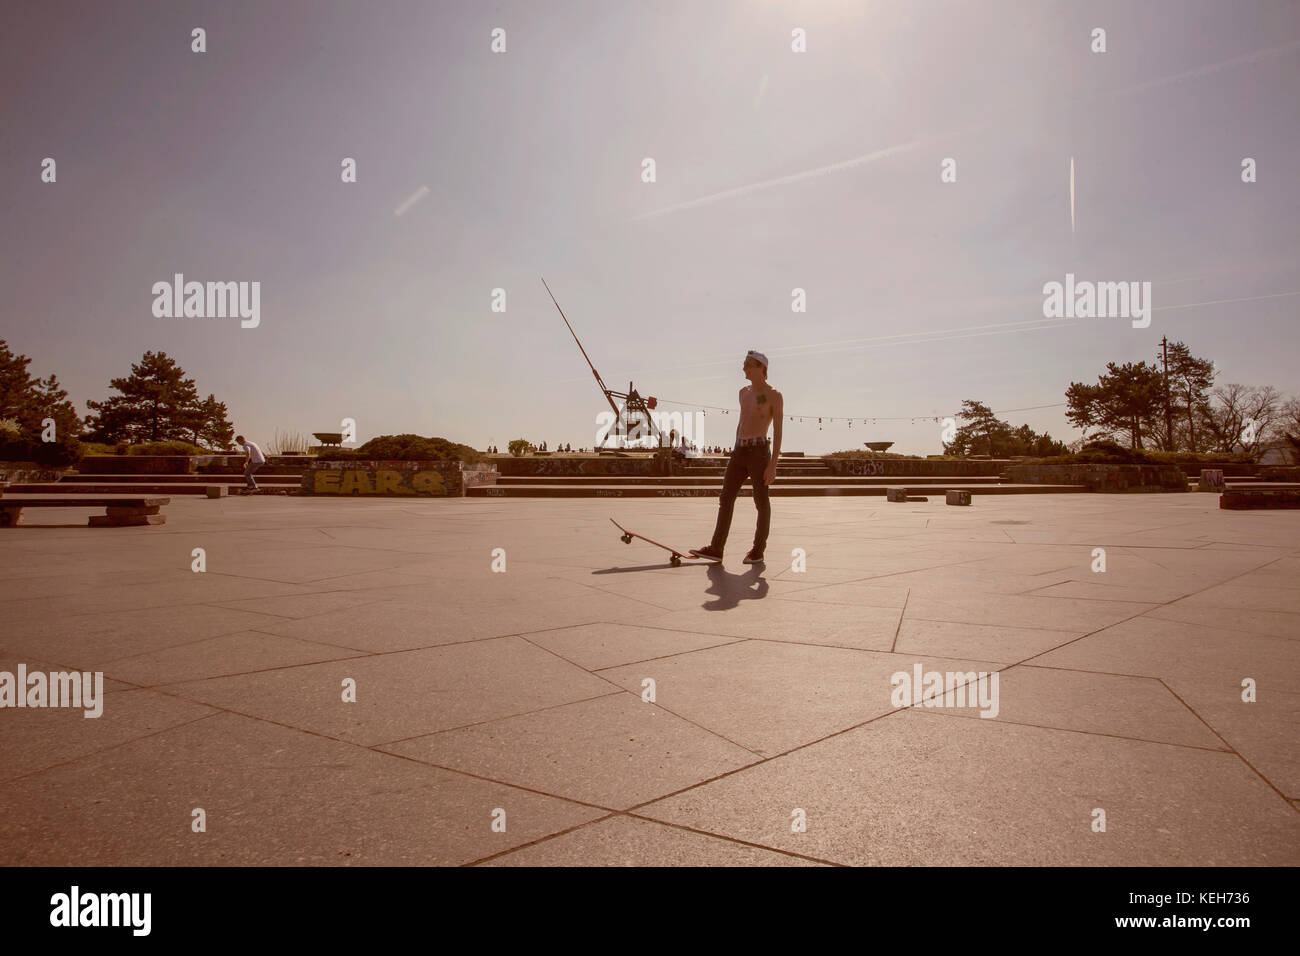 Prague metronom view with skateboarding young man at Letna district, March 2017, Prague, Czech Republic, Illustrative - Stock Image